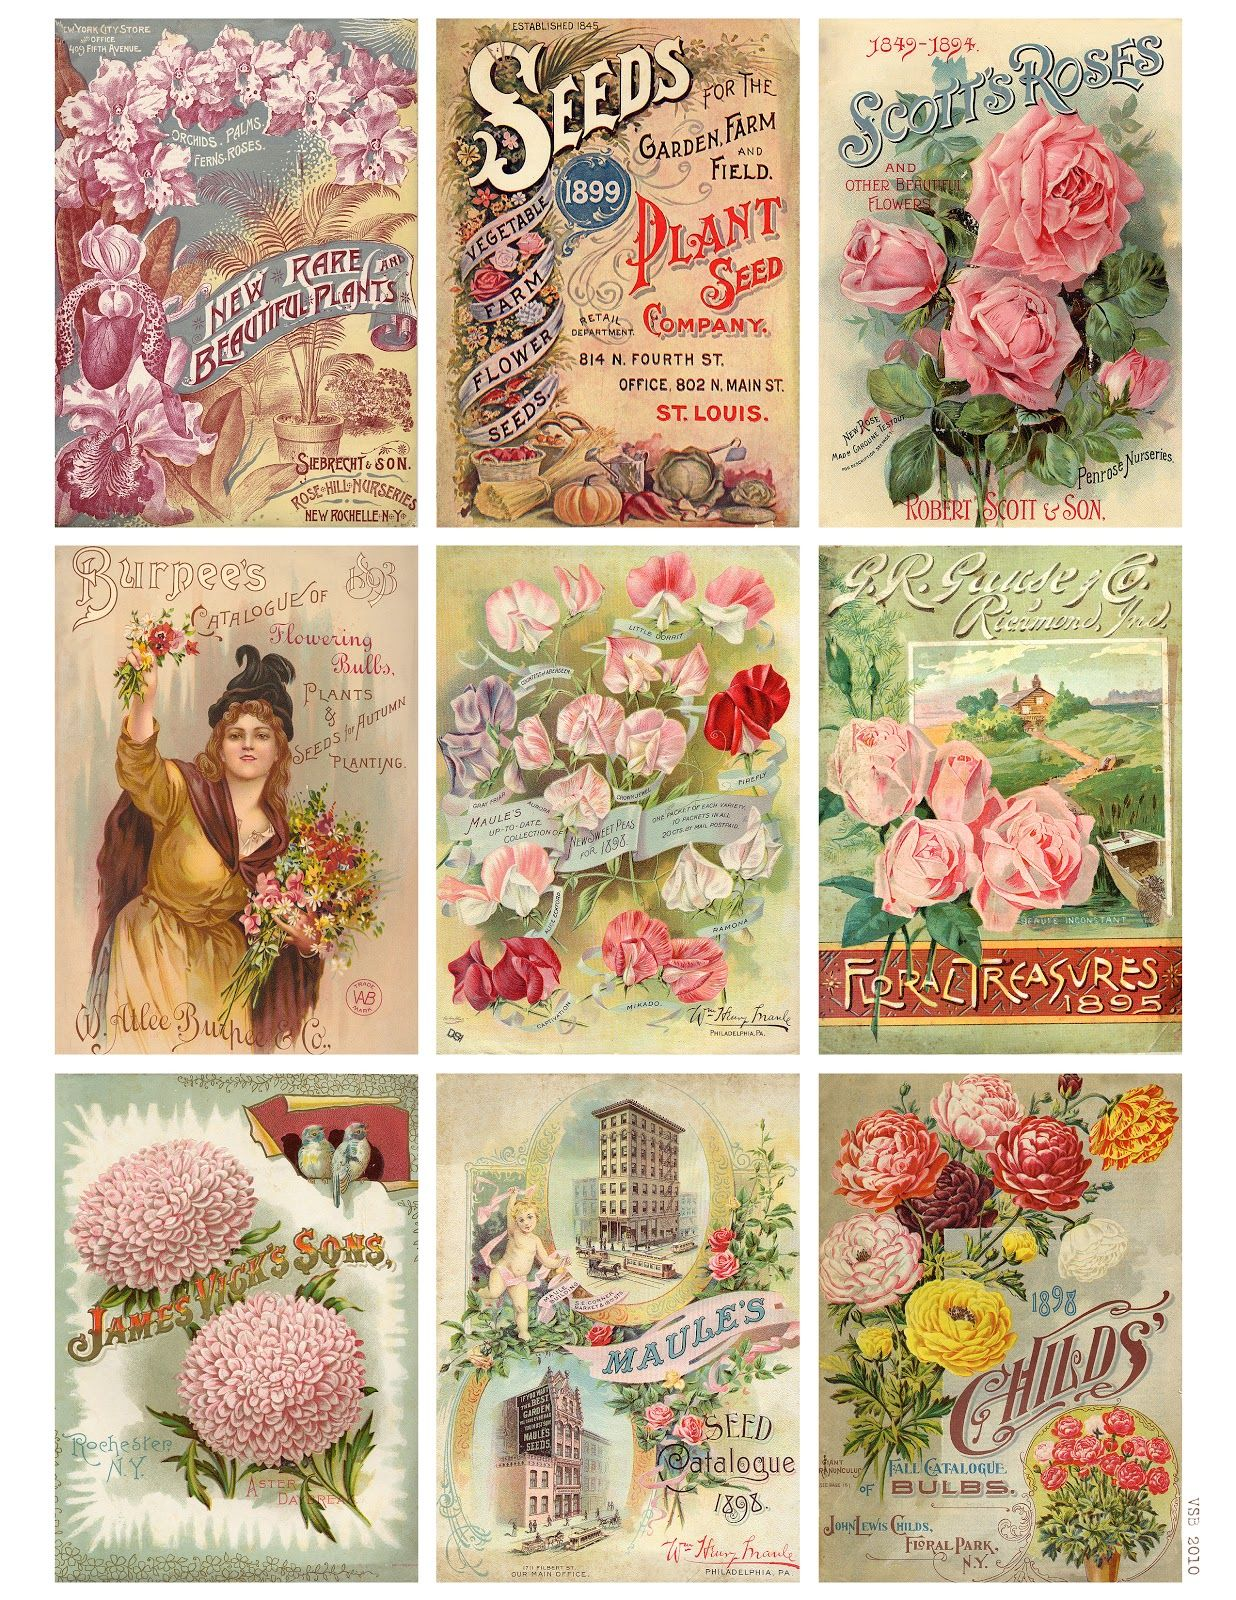 It is an image of Free Printable Vintage Images in clip art